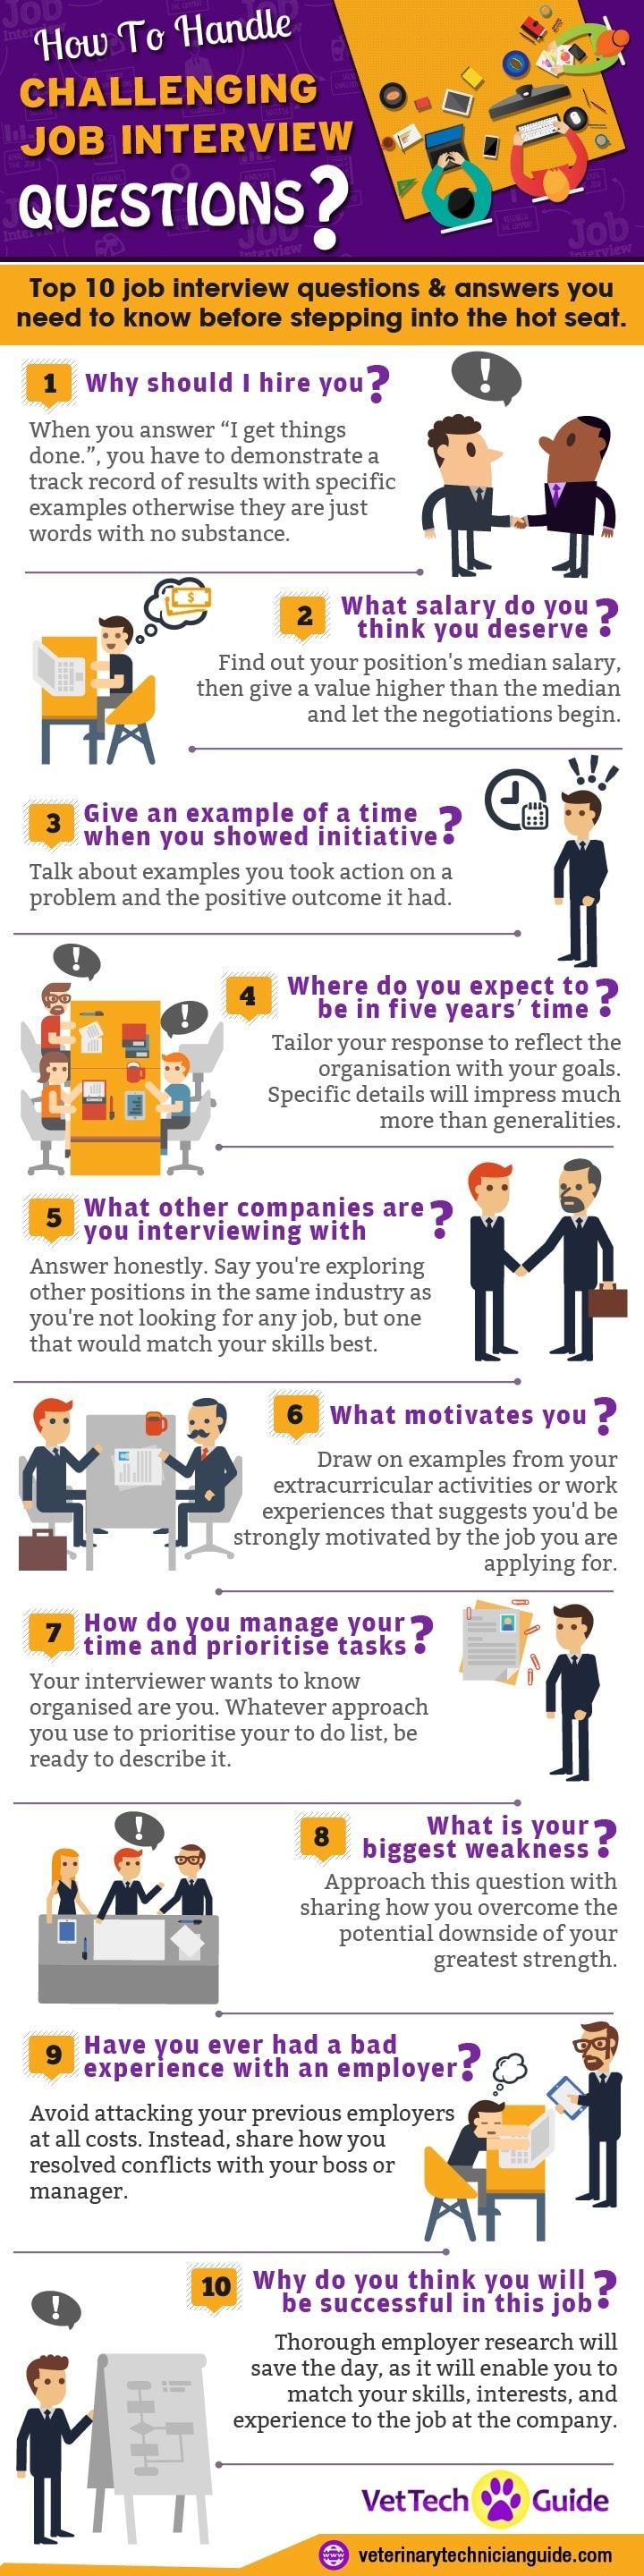 How_To_Handle_Challenging_Job_Interview_Questions_Live